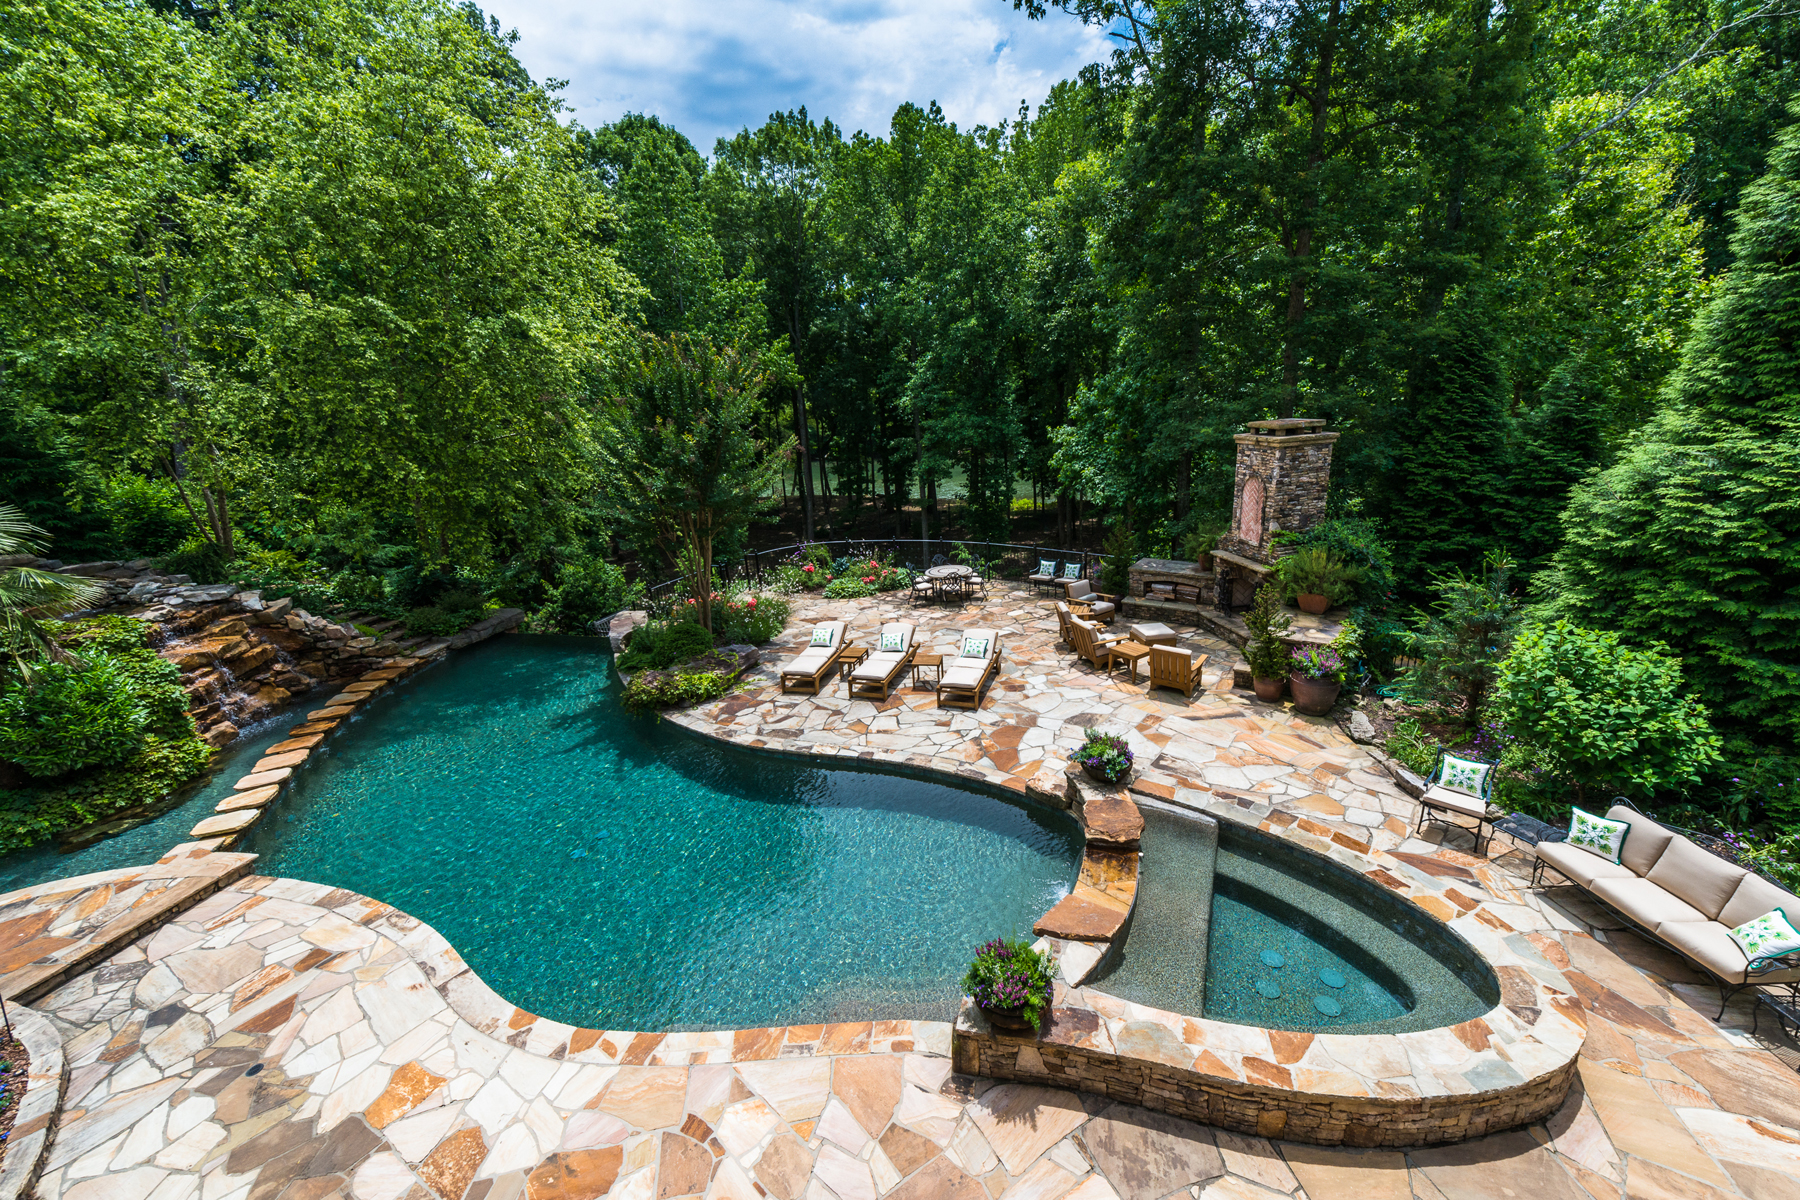 Частный односемейный дом для того Продажа на A Masterpiece In Johns Creek Most Prestigious Gated Golf Community 490 Covington Cove Alpharetta, Джорджия 30022 Соединенные Штаты